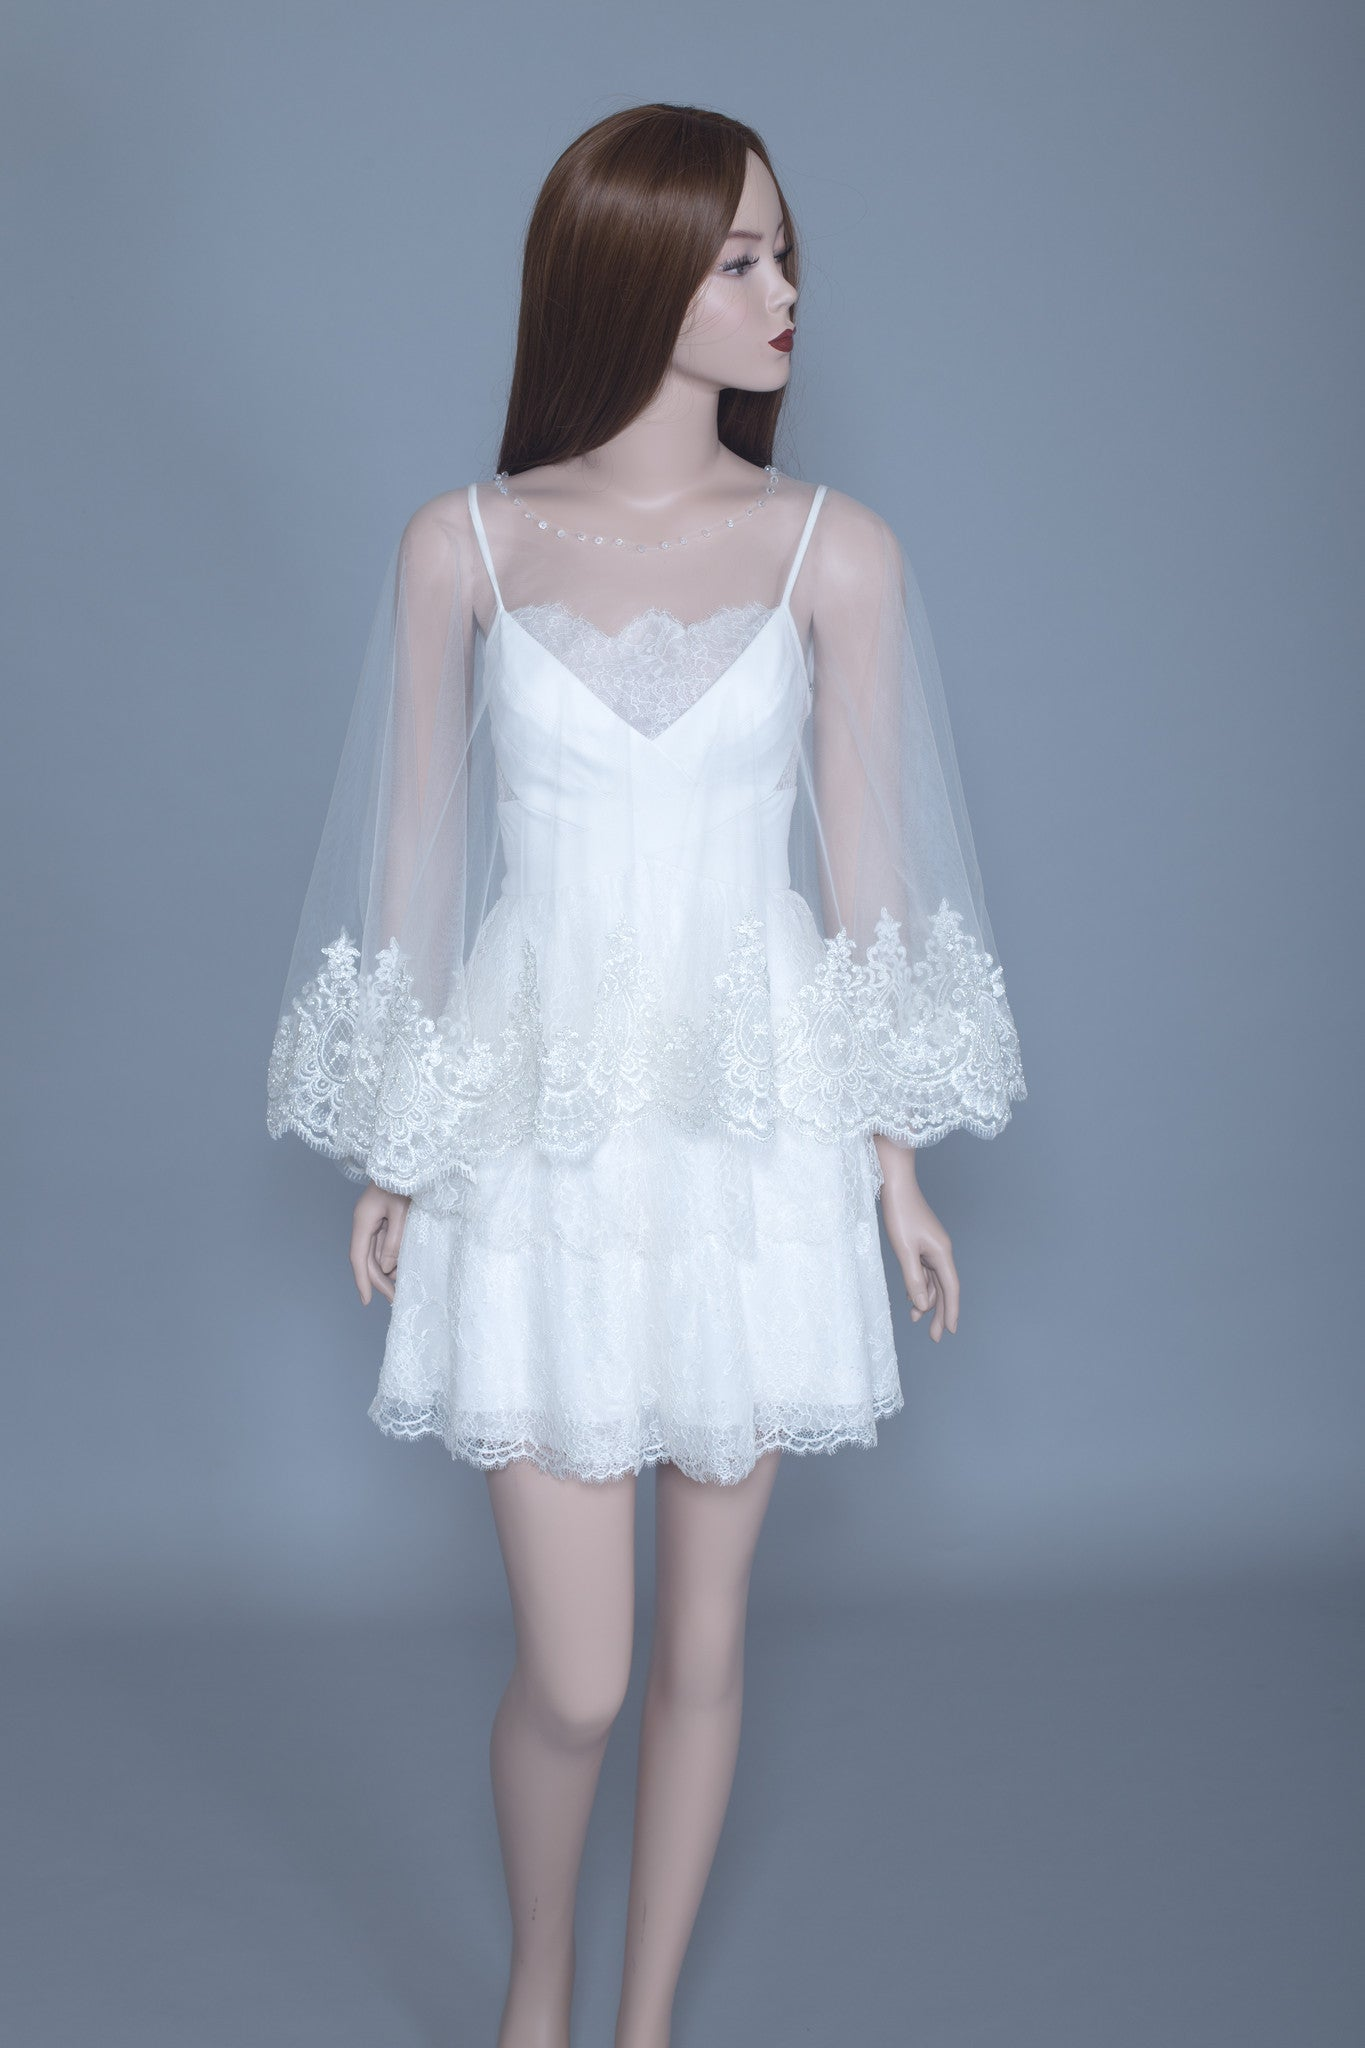 Lace Bridal Cape (#Leora) - Dream Dresses by P.M.N  - 2